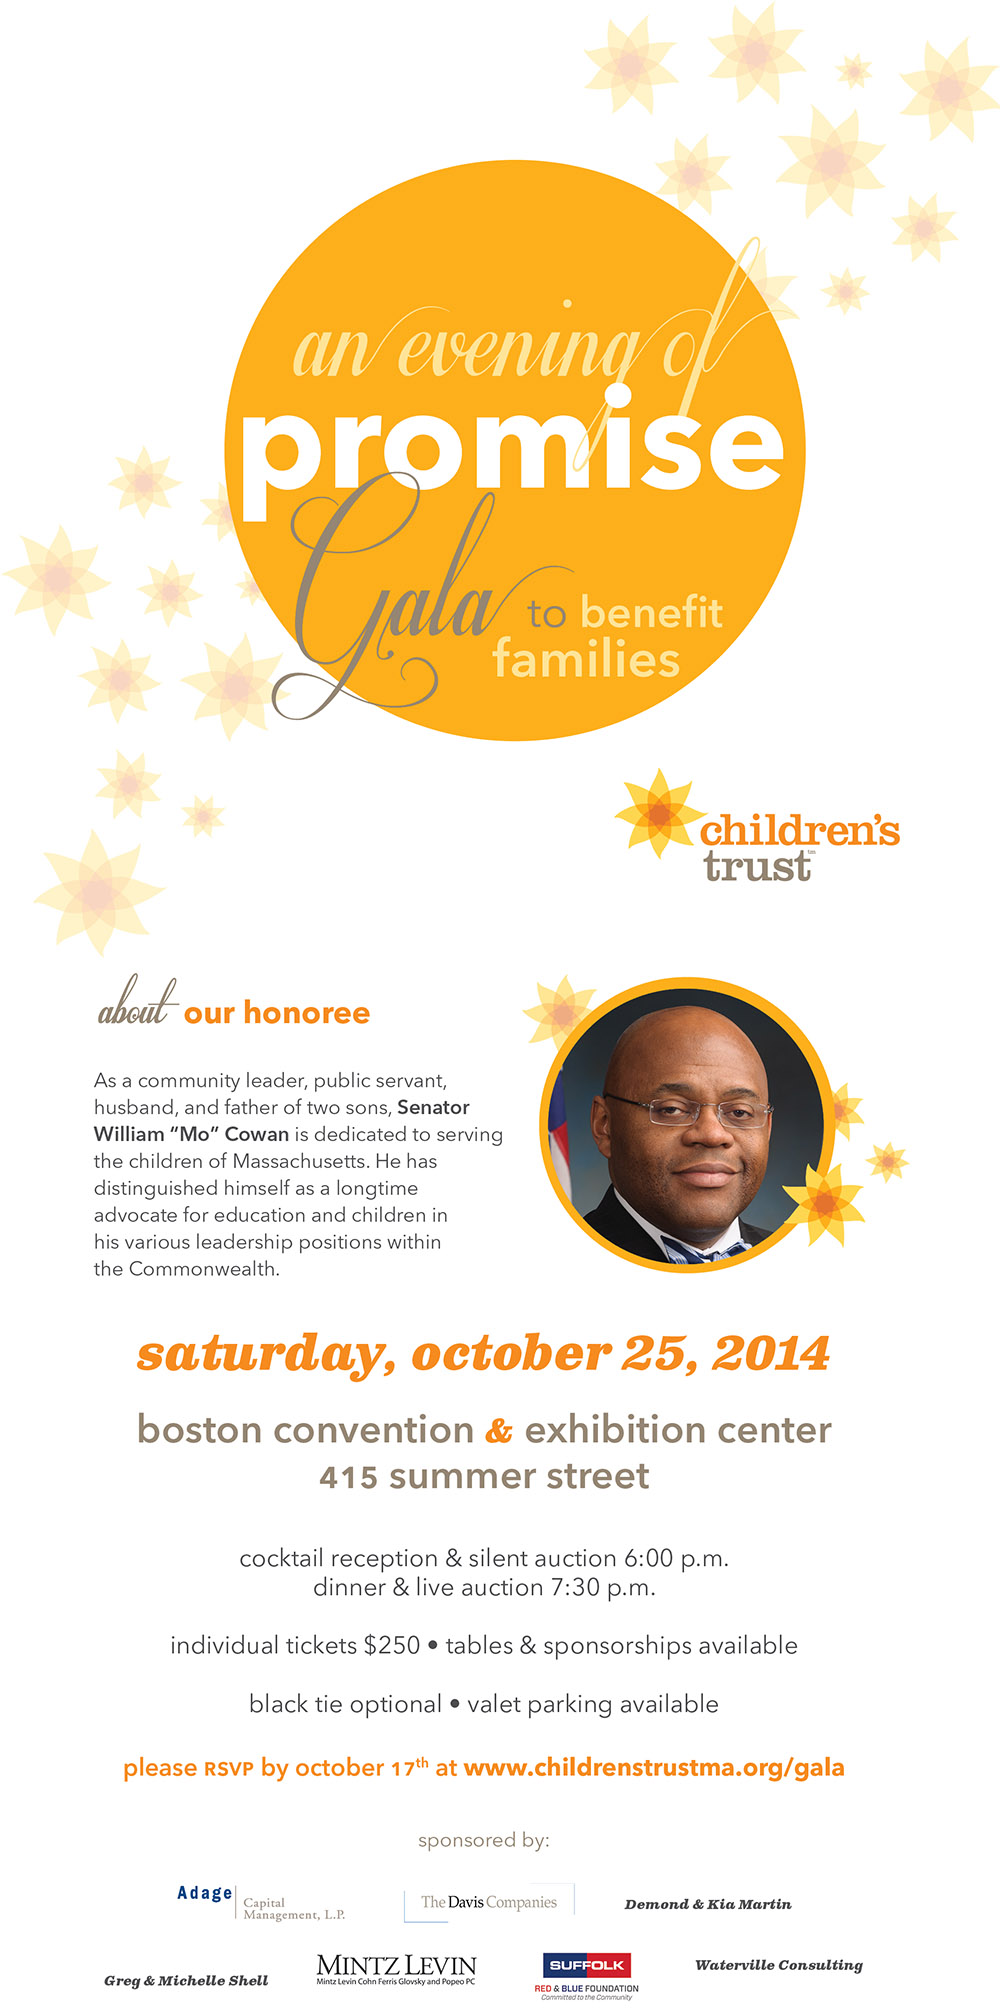 An Evening of Promise: Gala to Benefit Families